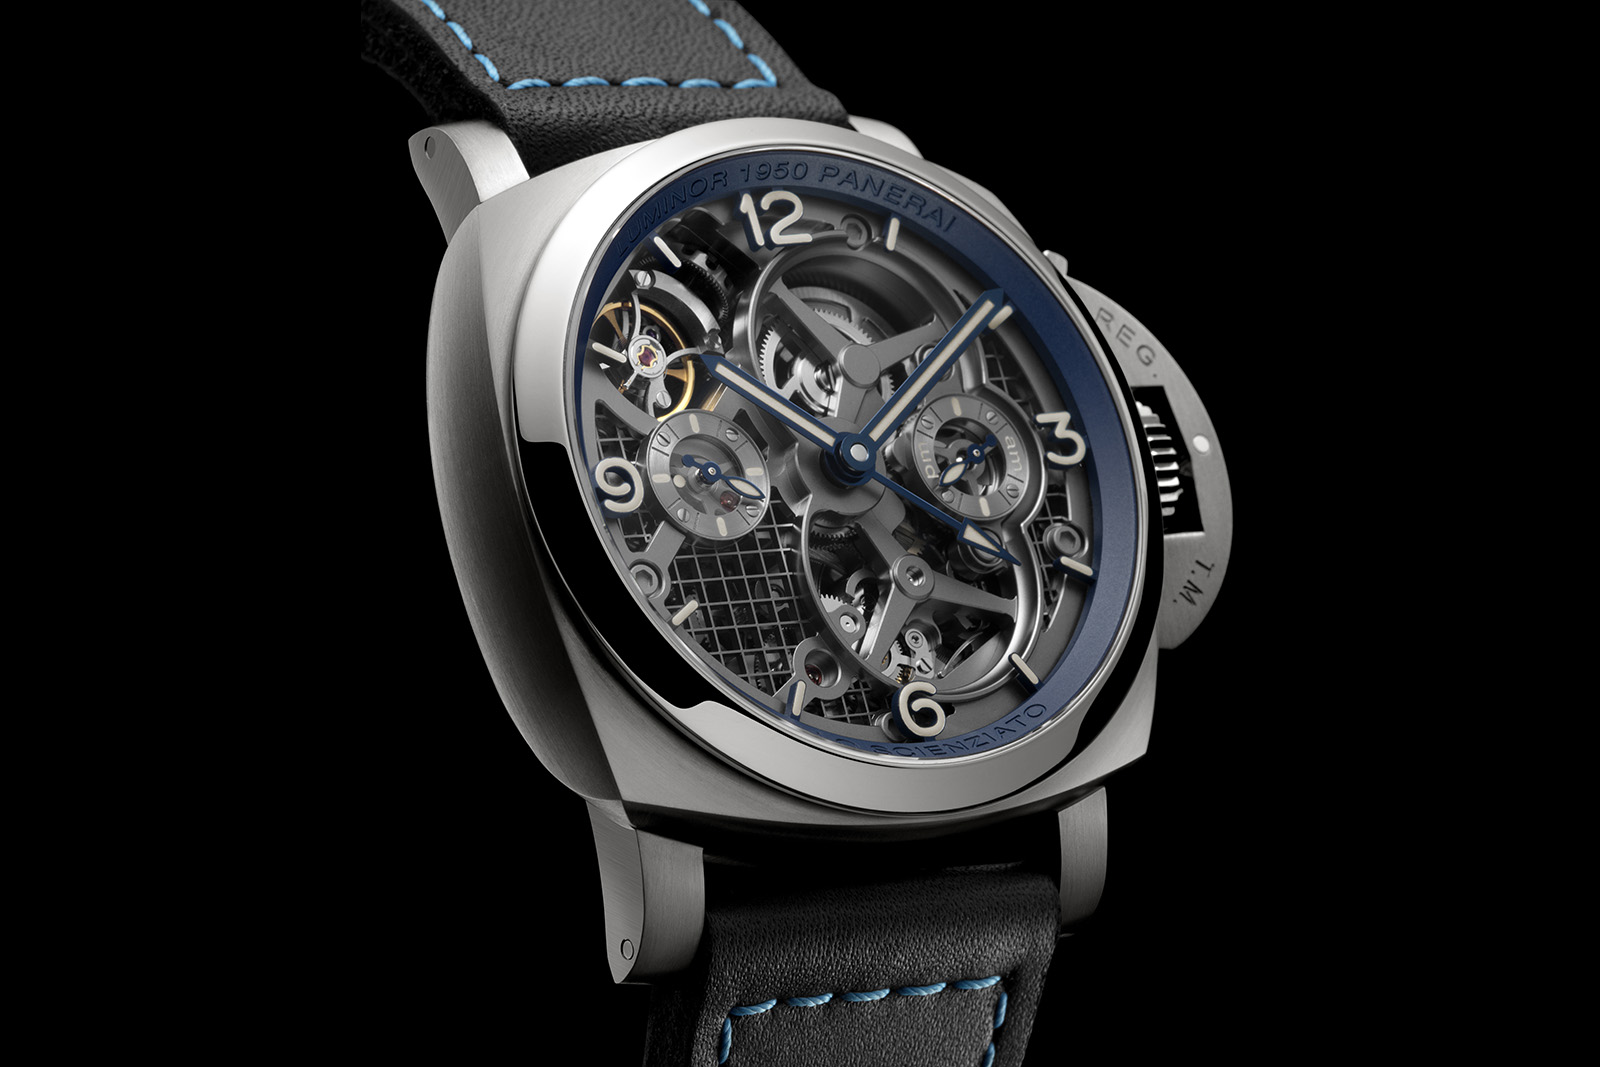 Panerai Lo Scienziato – Luminor 1950 Tourbillon GMT - PAM 767